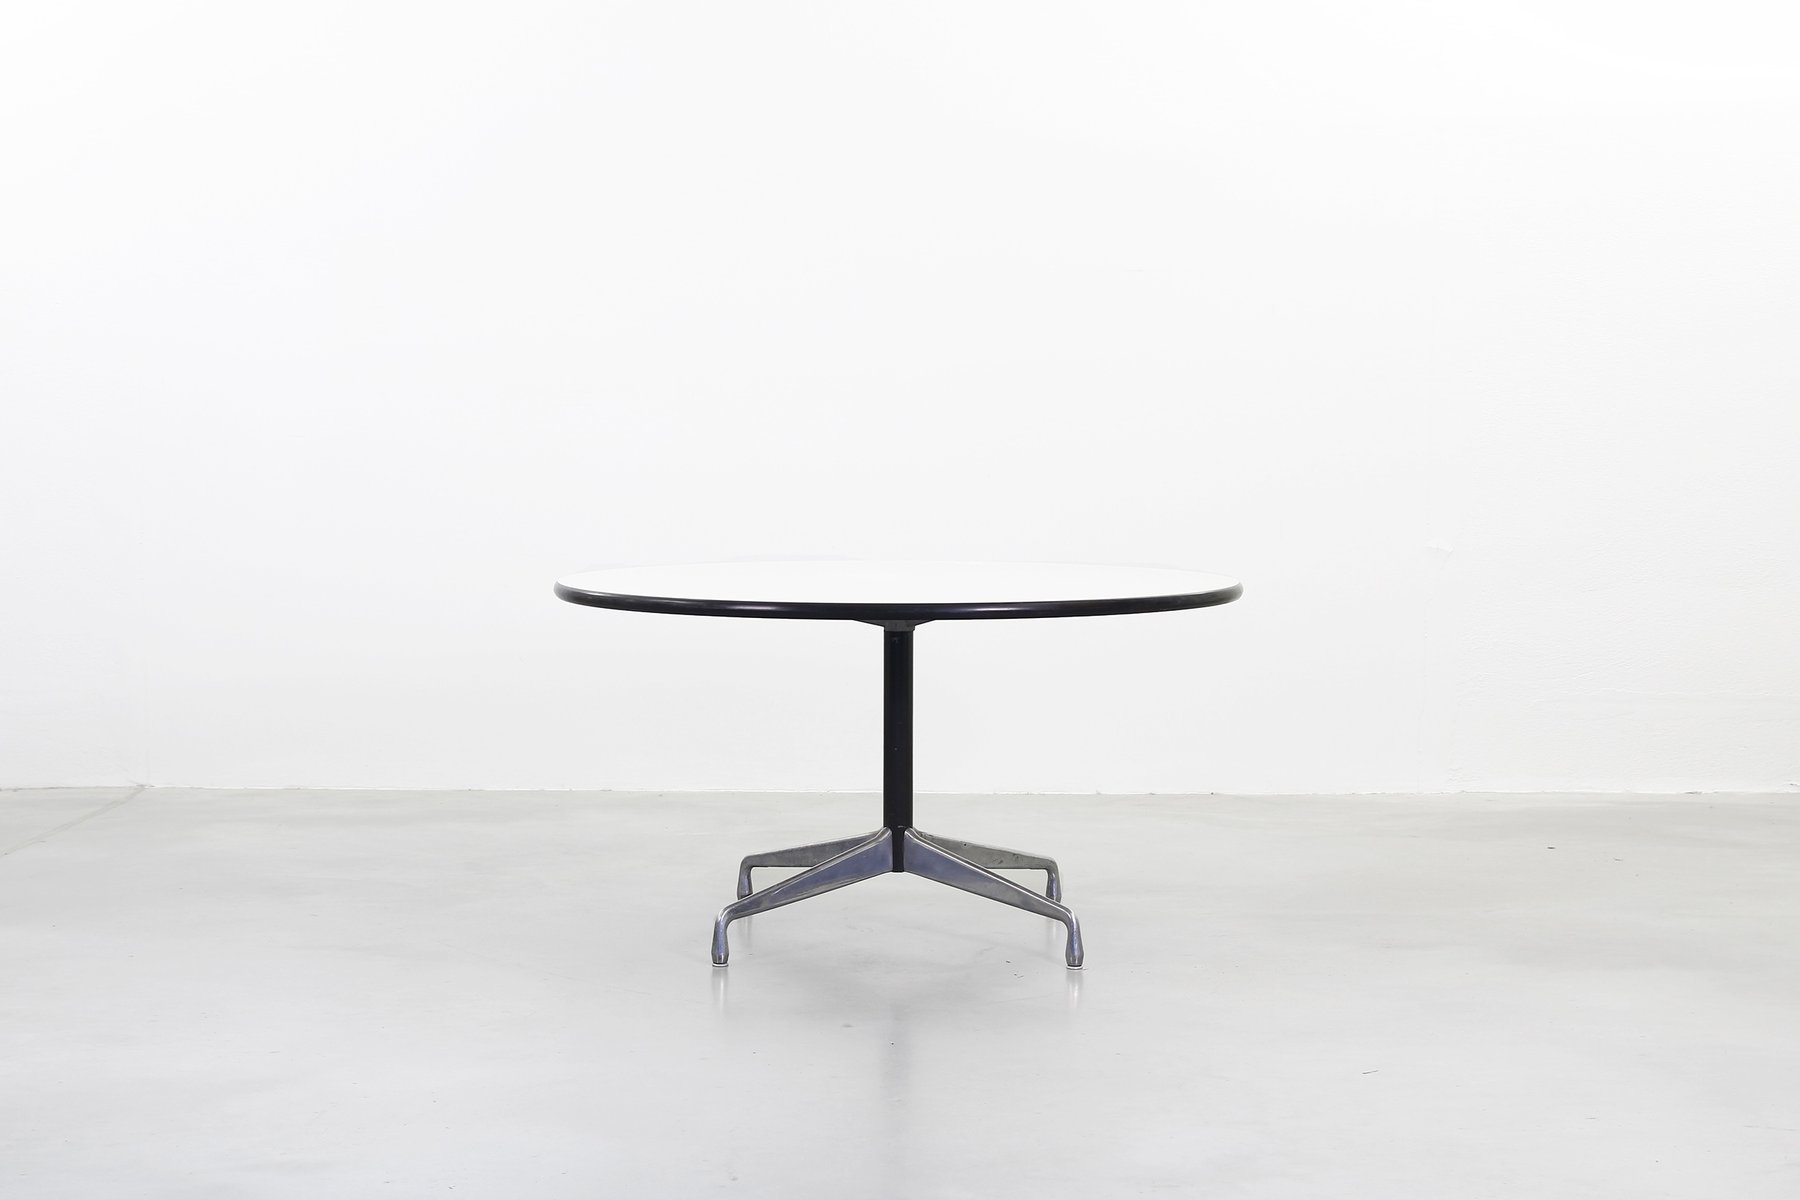 Vintage Dining Table by Charles & Ray Eames for Herman Miller for